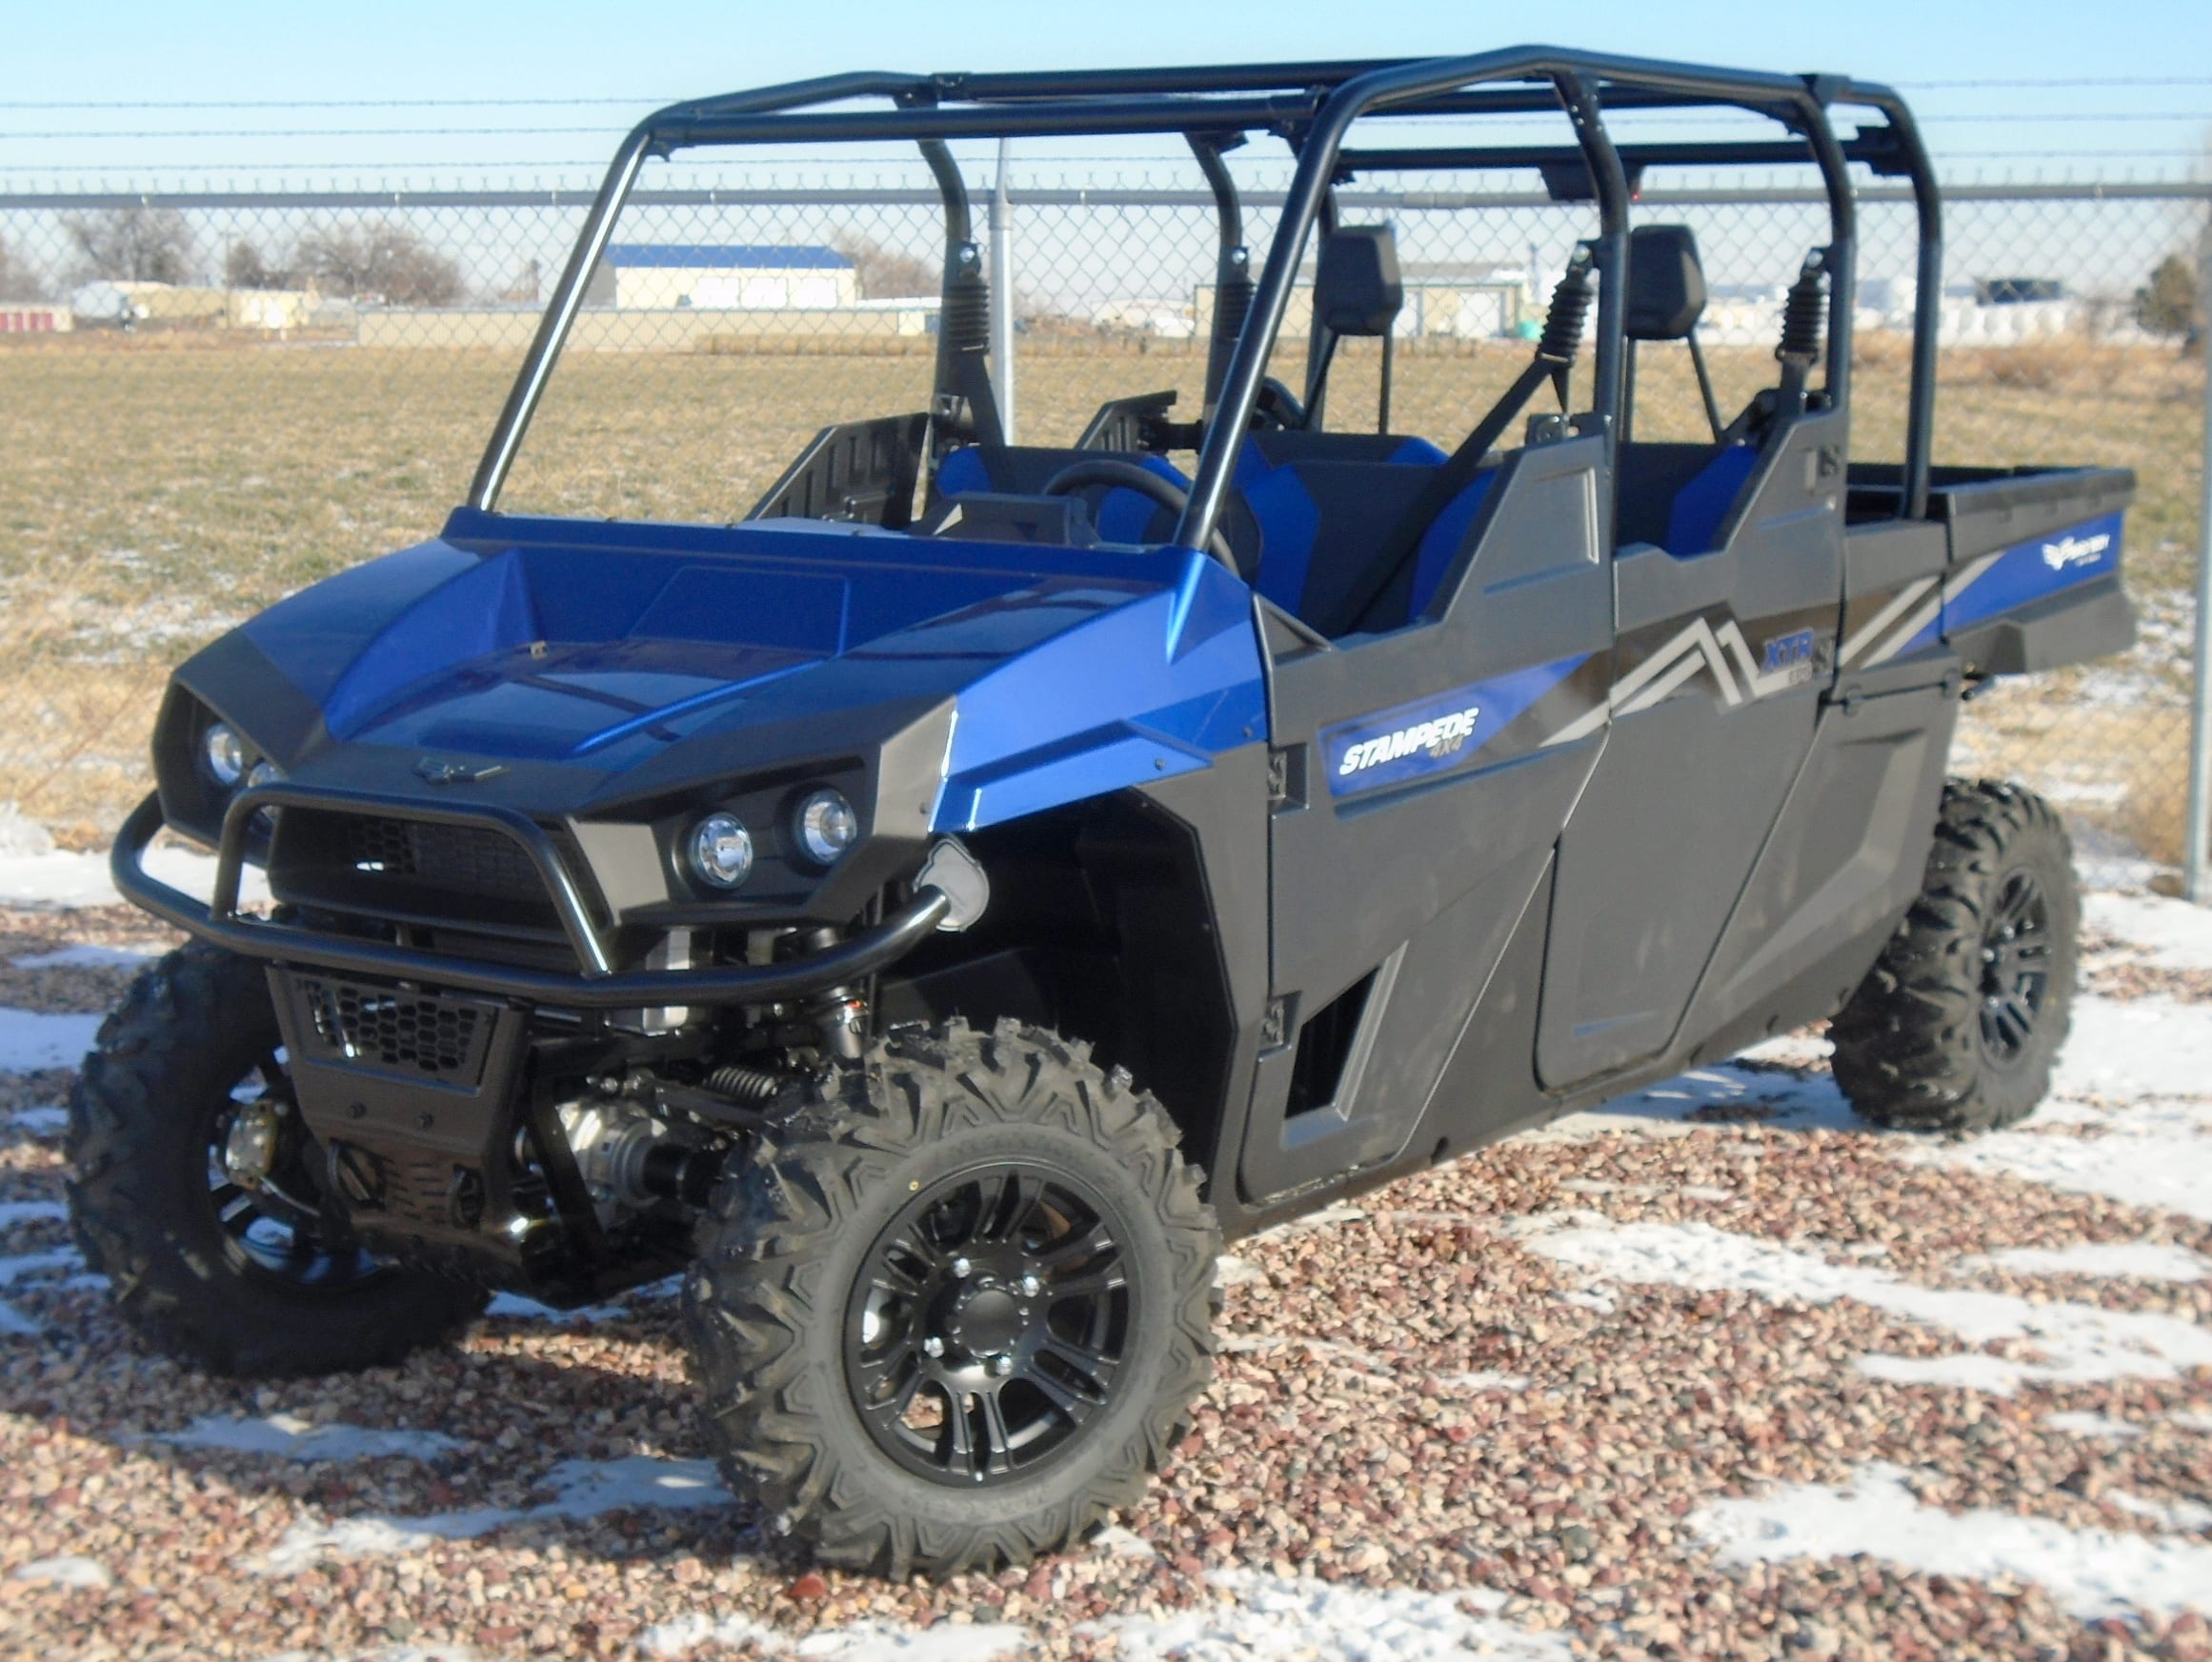 Textron Bad Boy Off Road Utility Vehicle Rollover Recall